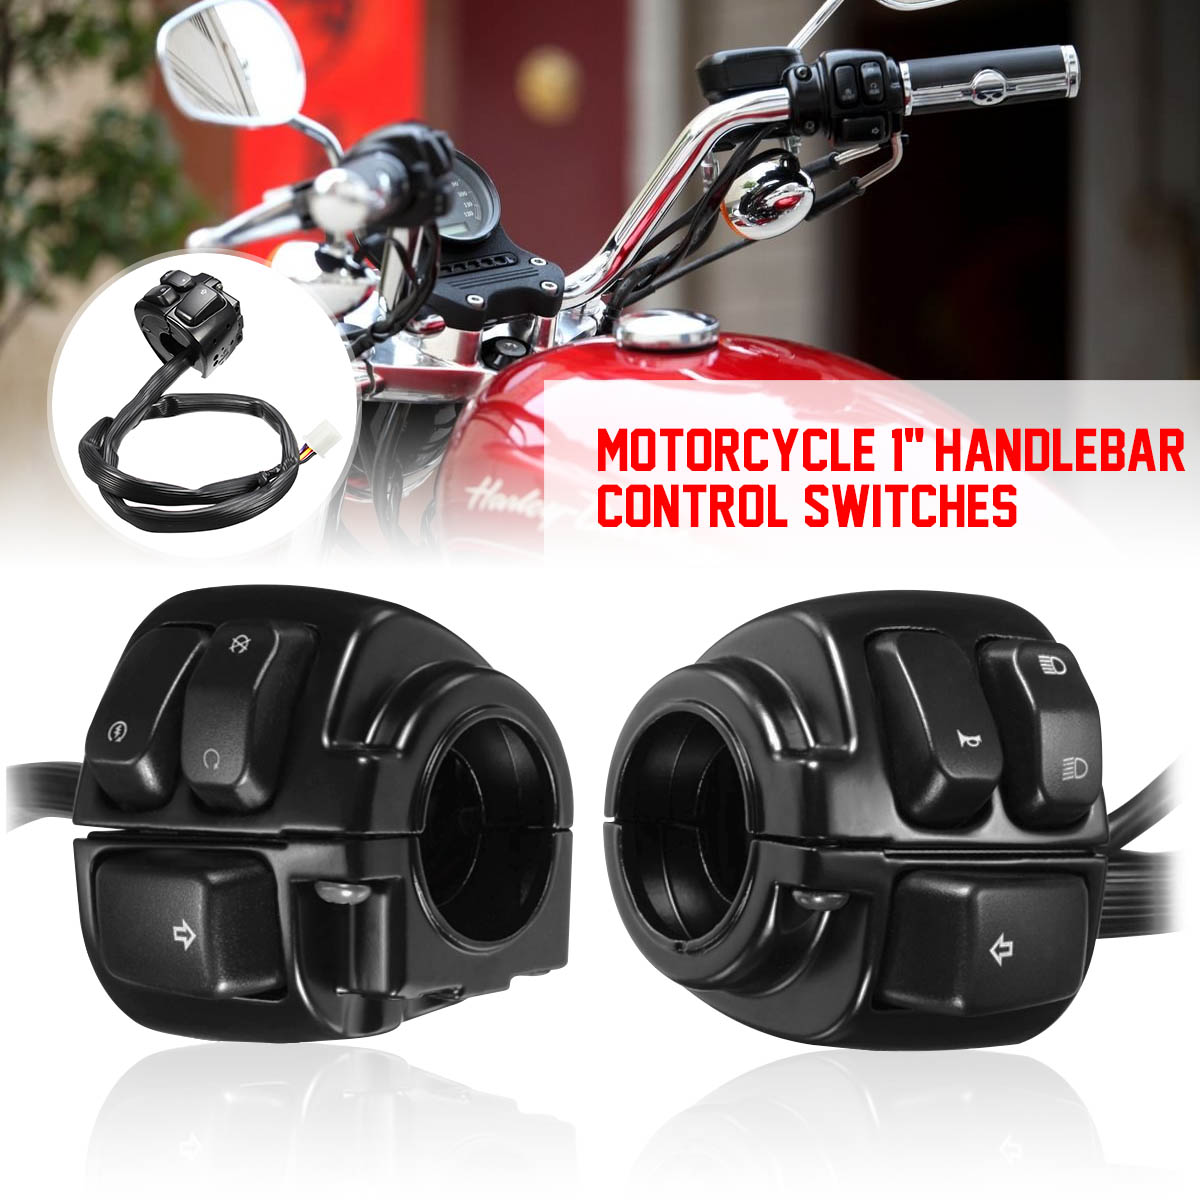 Motorcycle Electrical & Ignition Parts PAIR Motorcycle 1 ... on racing switches, motor switches, ignition switches, lever switches, battery switches, headlight switches, hub switches, brake switches,